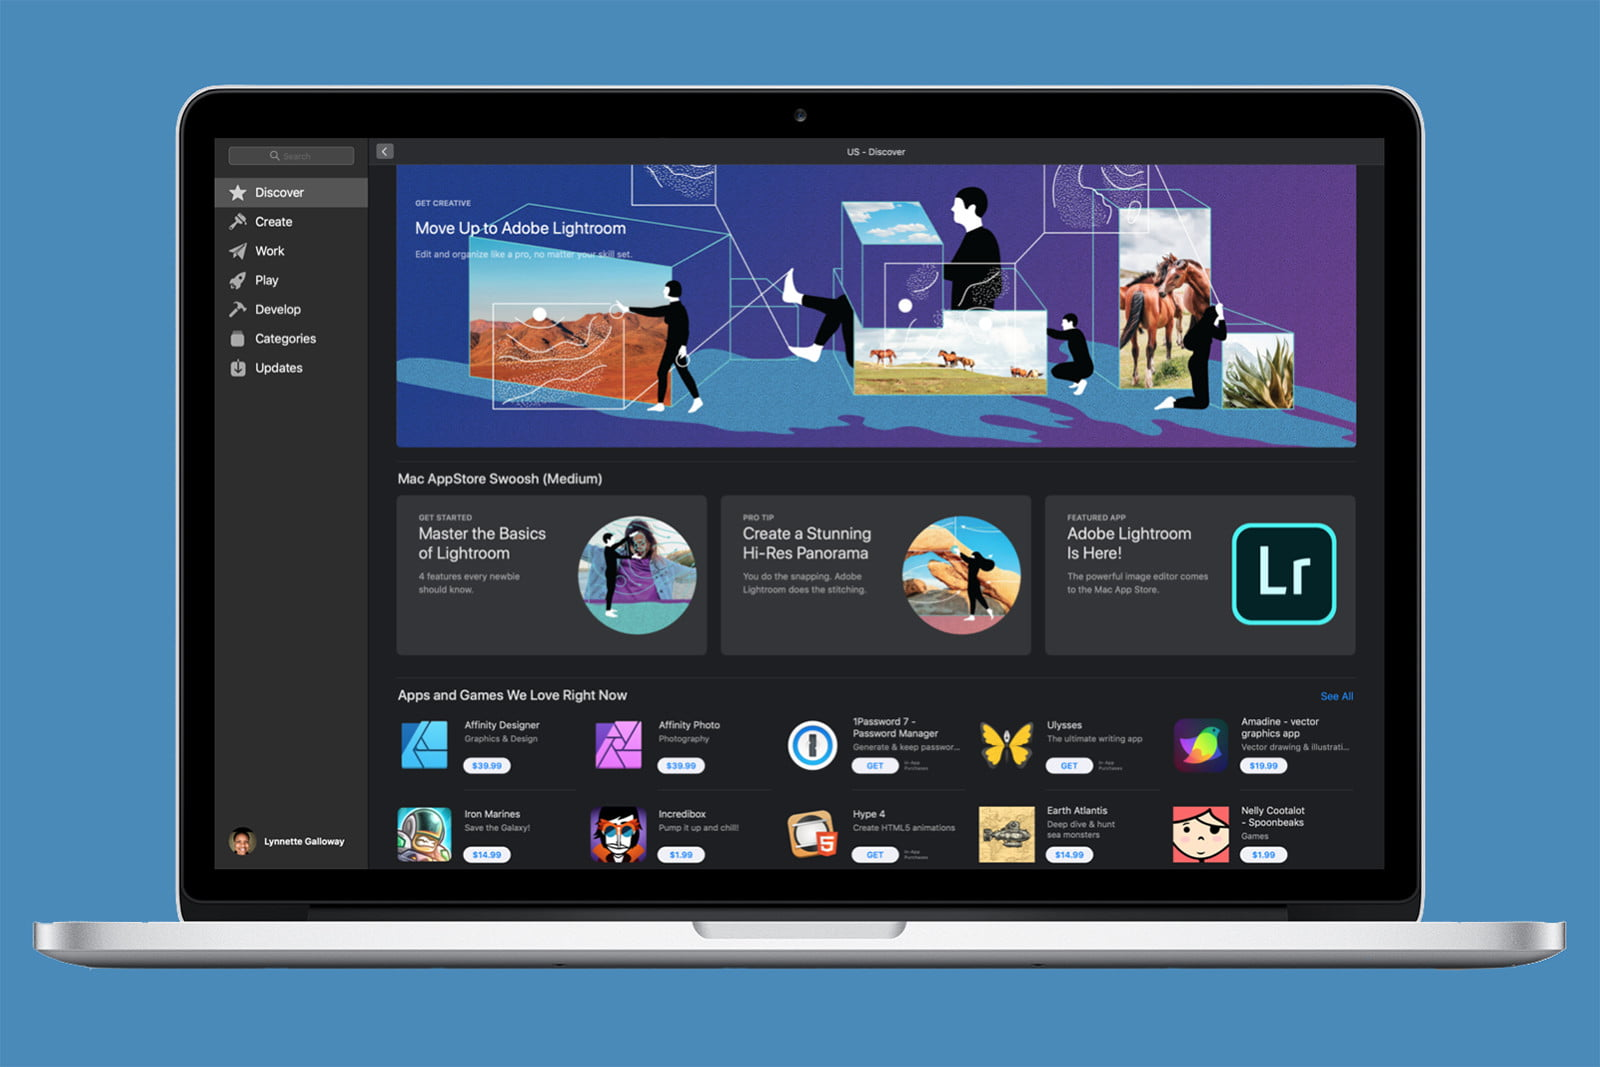 Adobe Lightroom CC Is Making A Comeback On The Mac App Store - TechHX